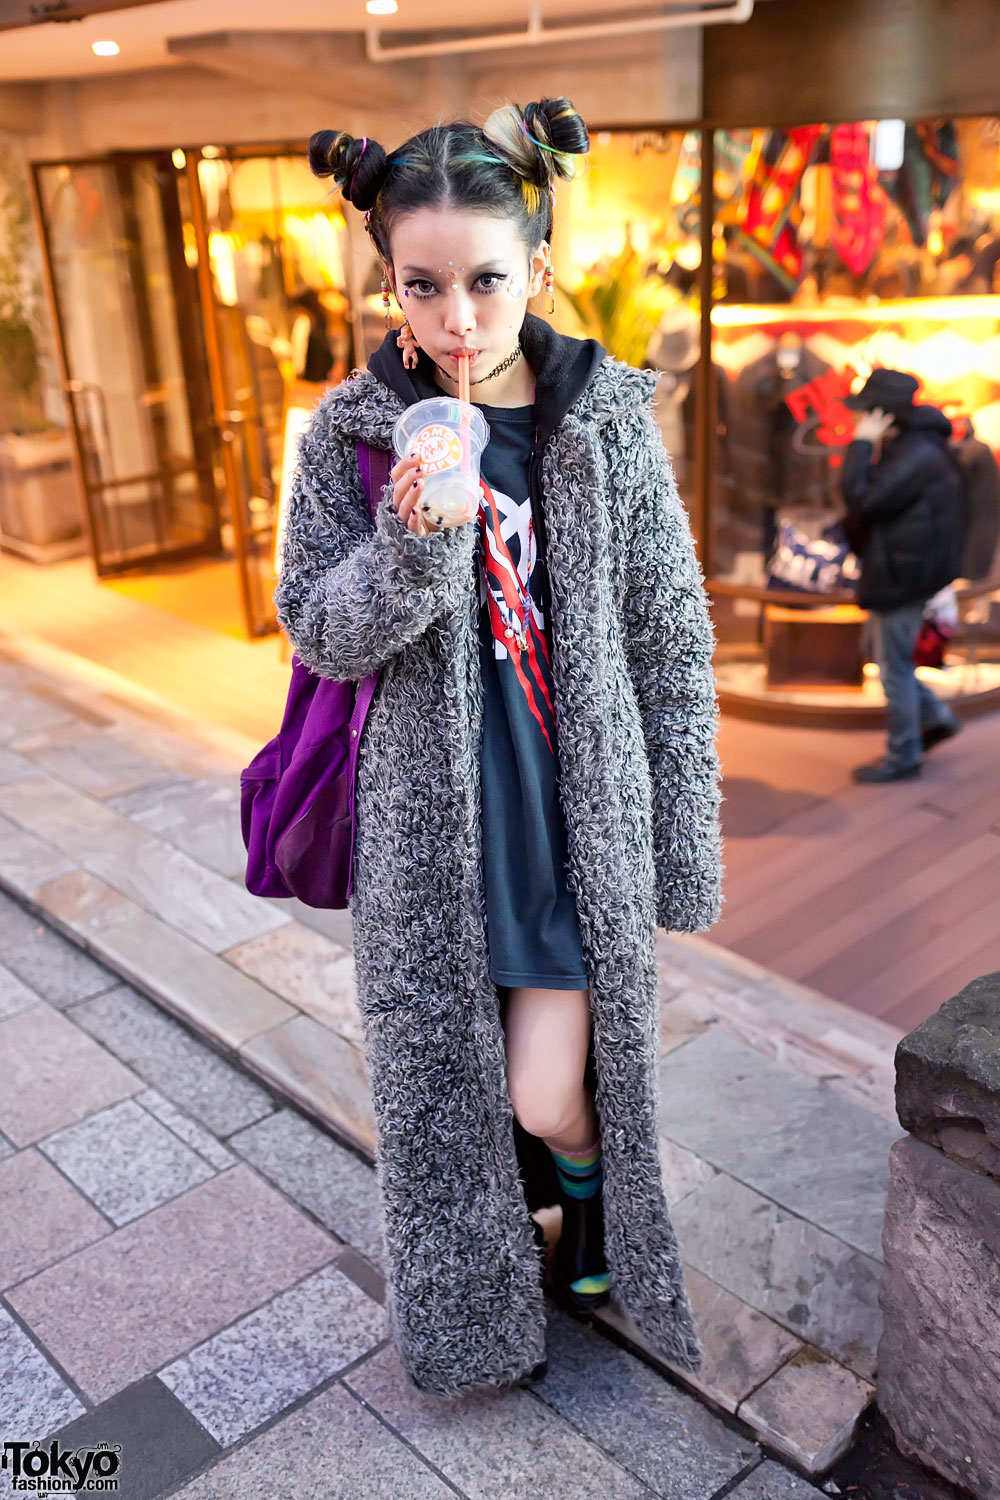 Hirari Ikeda In Harajuku W Long Coat Colorful Double Bun Hairstyle